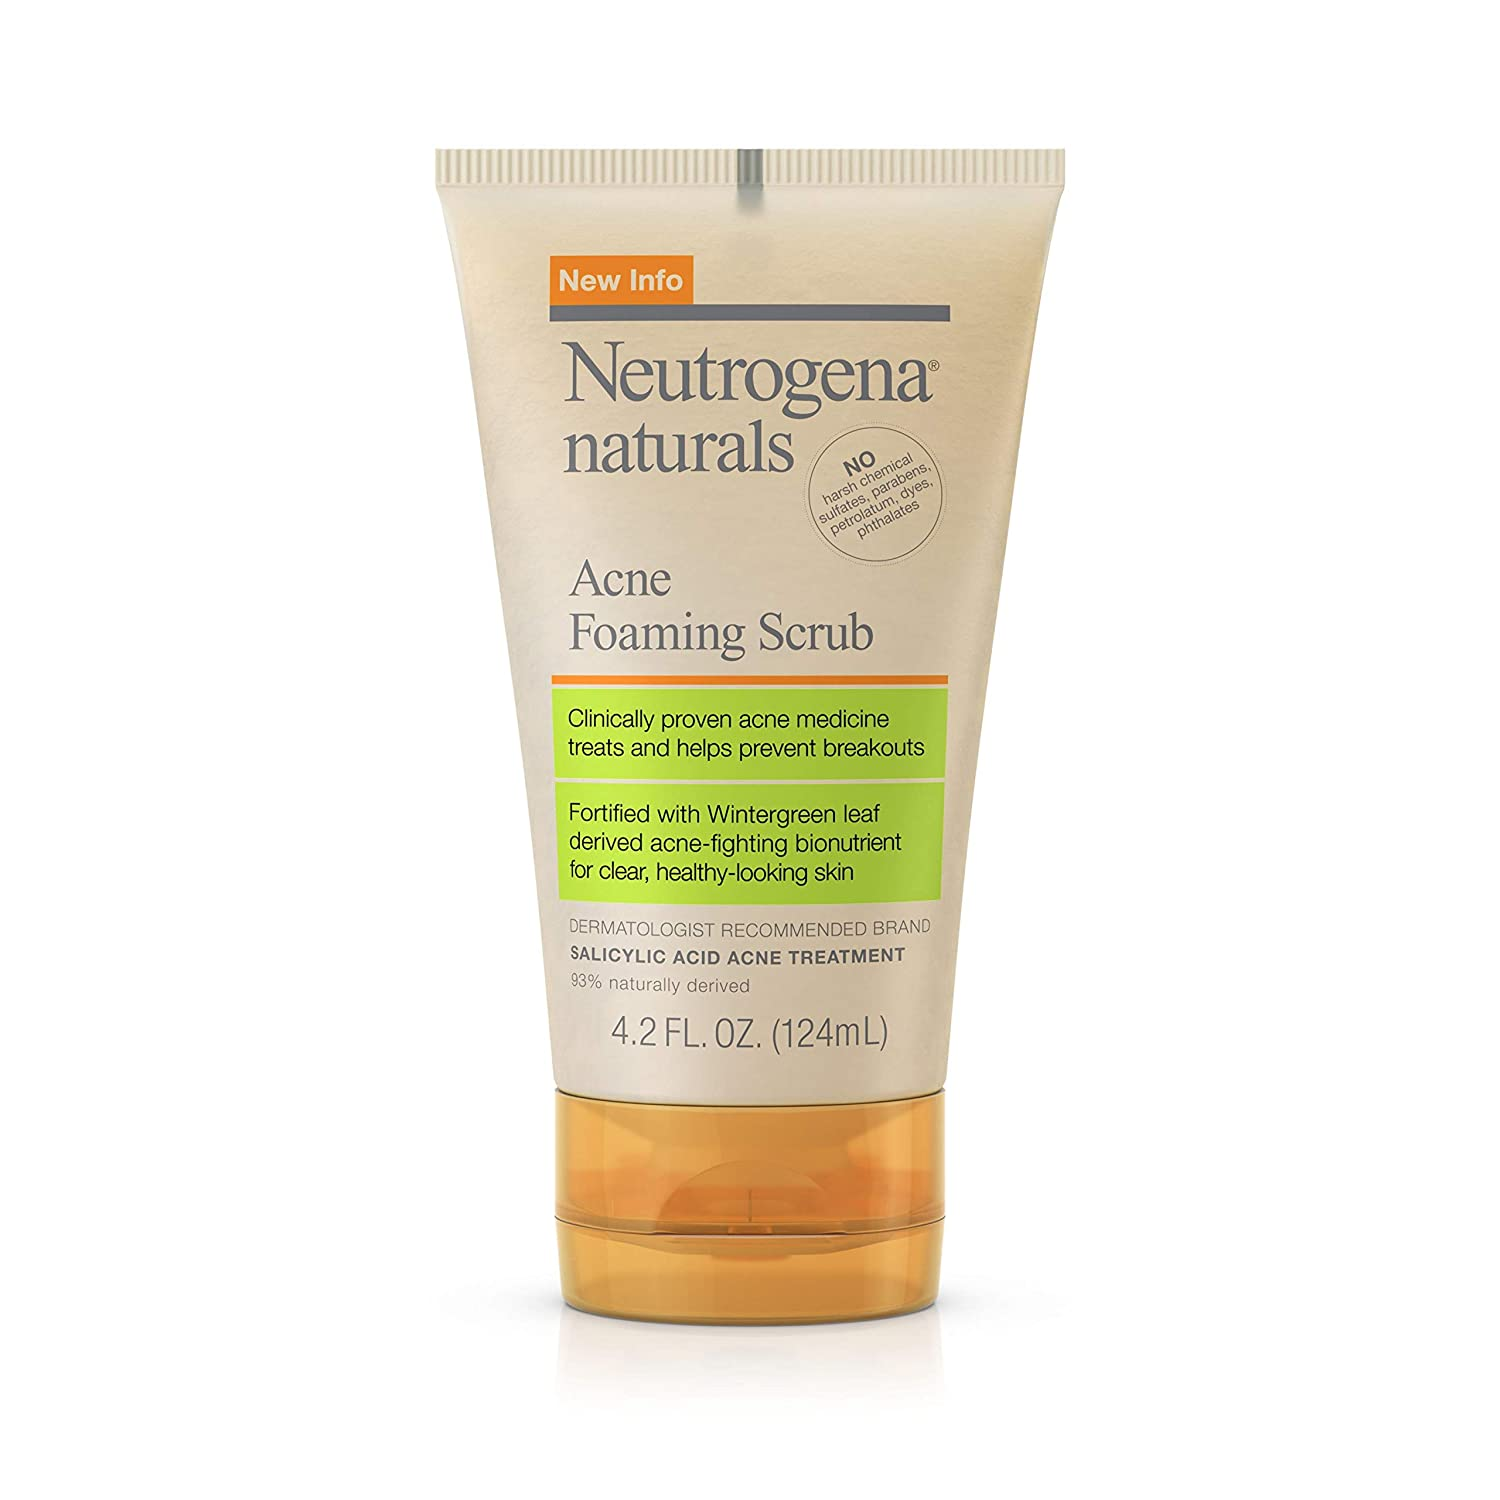 Best Face Scrubs For Acne - Neutrogena Naturals Acne Foaming Facial Scrub